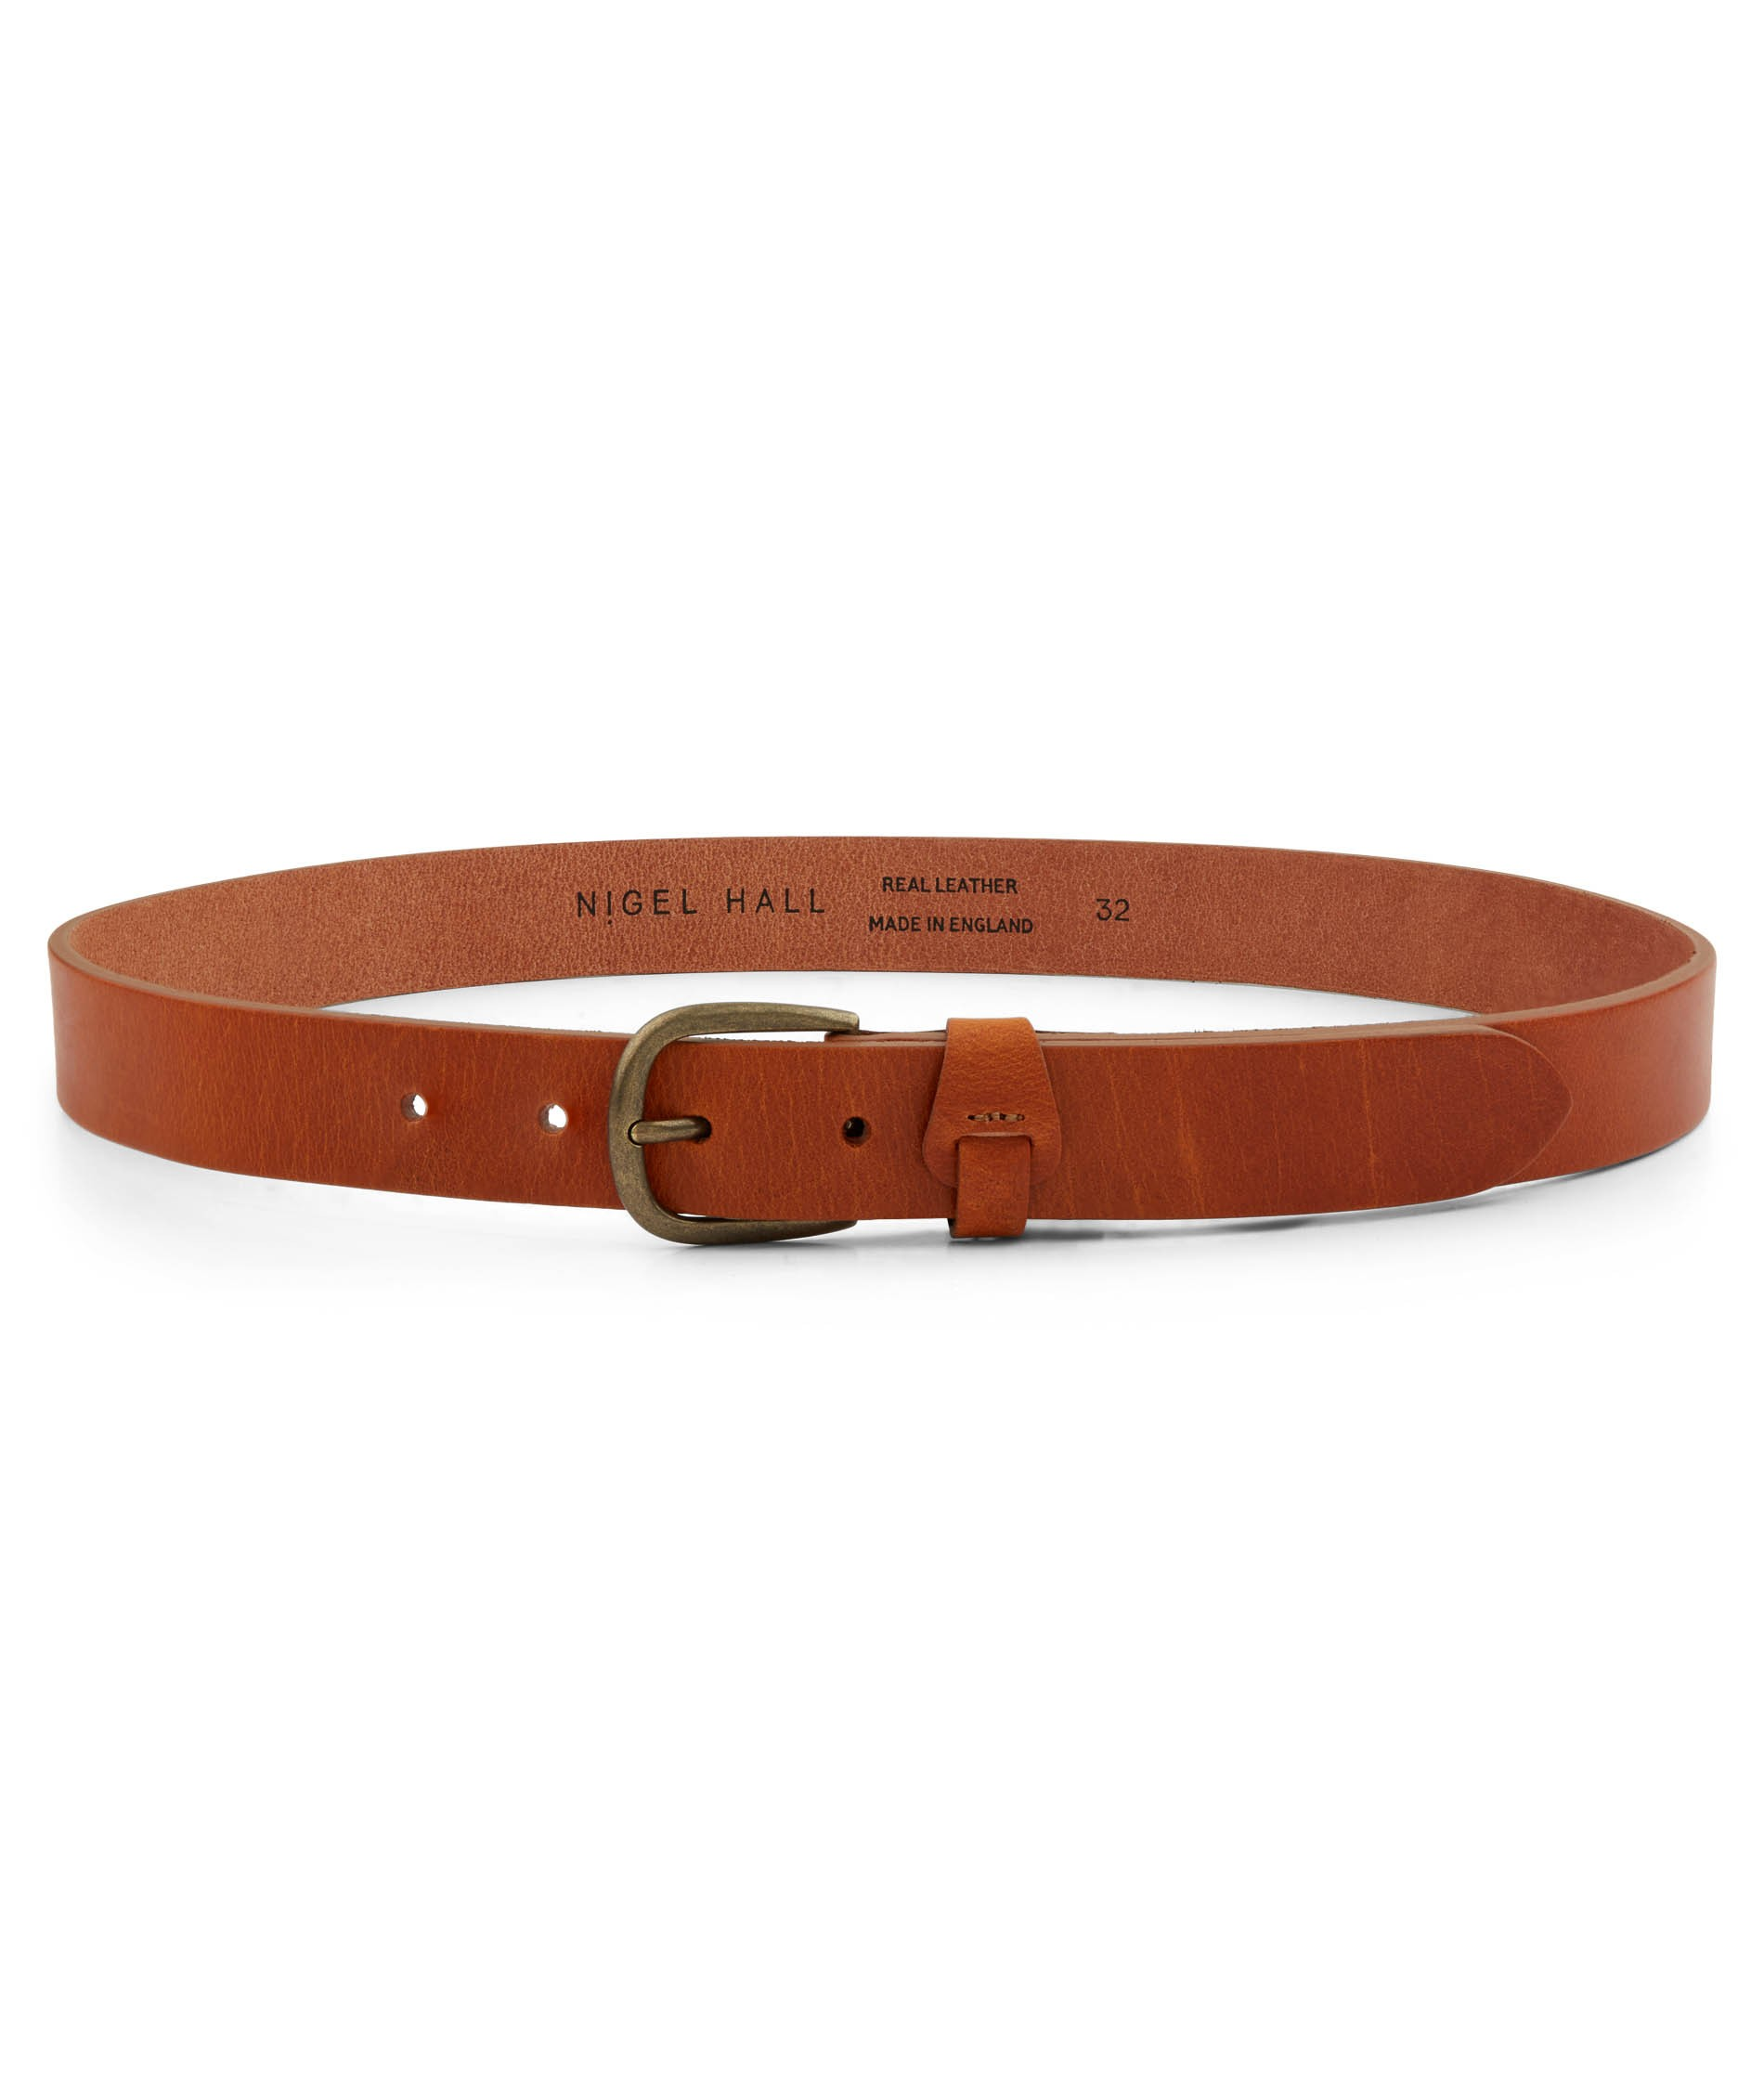 Nigel Hall Tan Made in England Leather Belt (Berger)